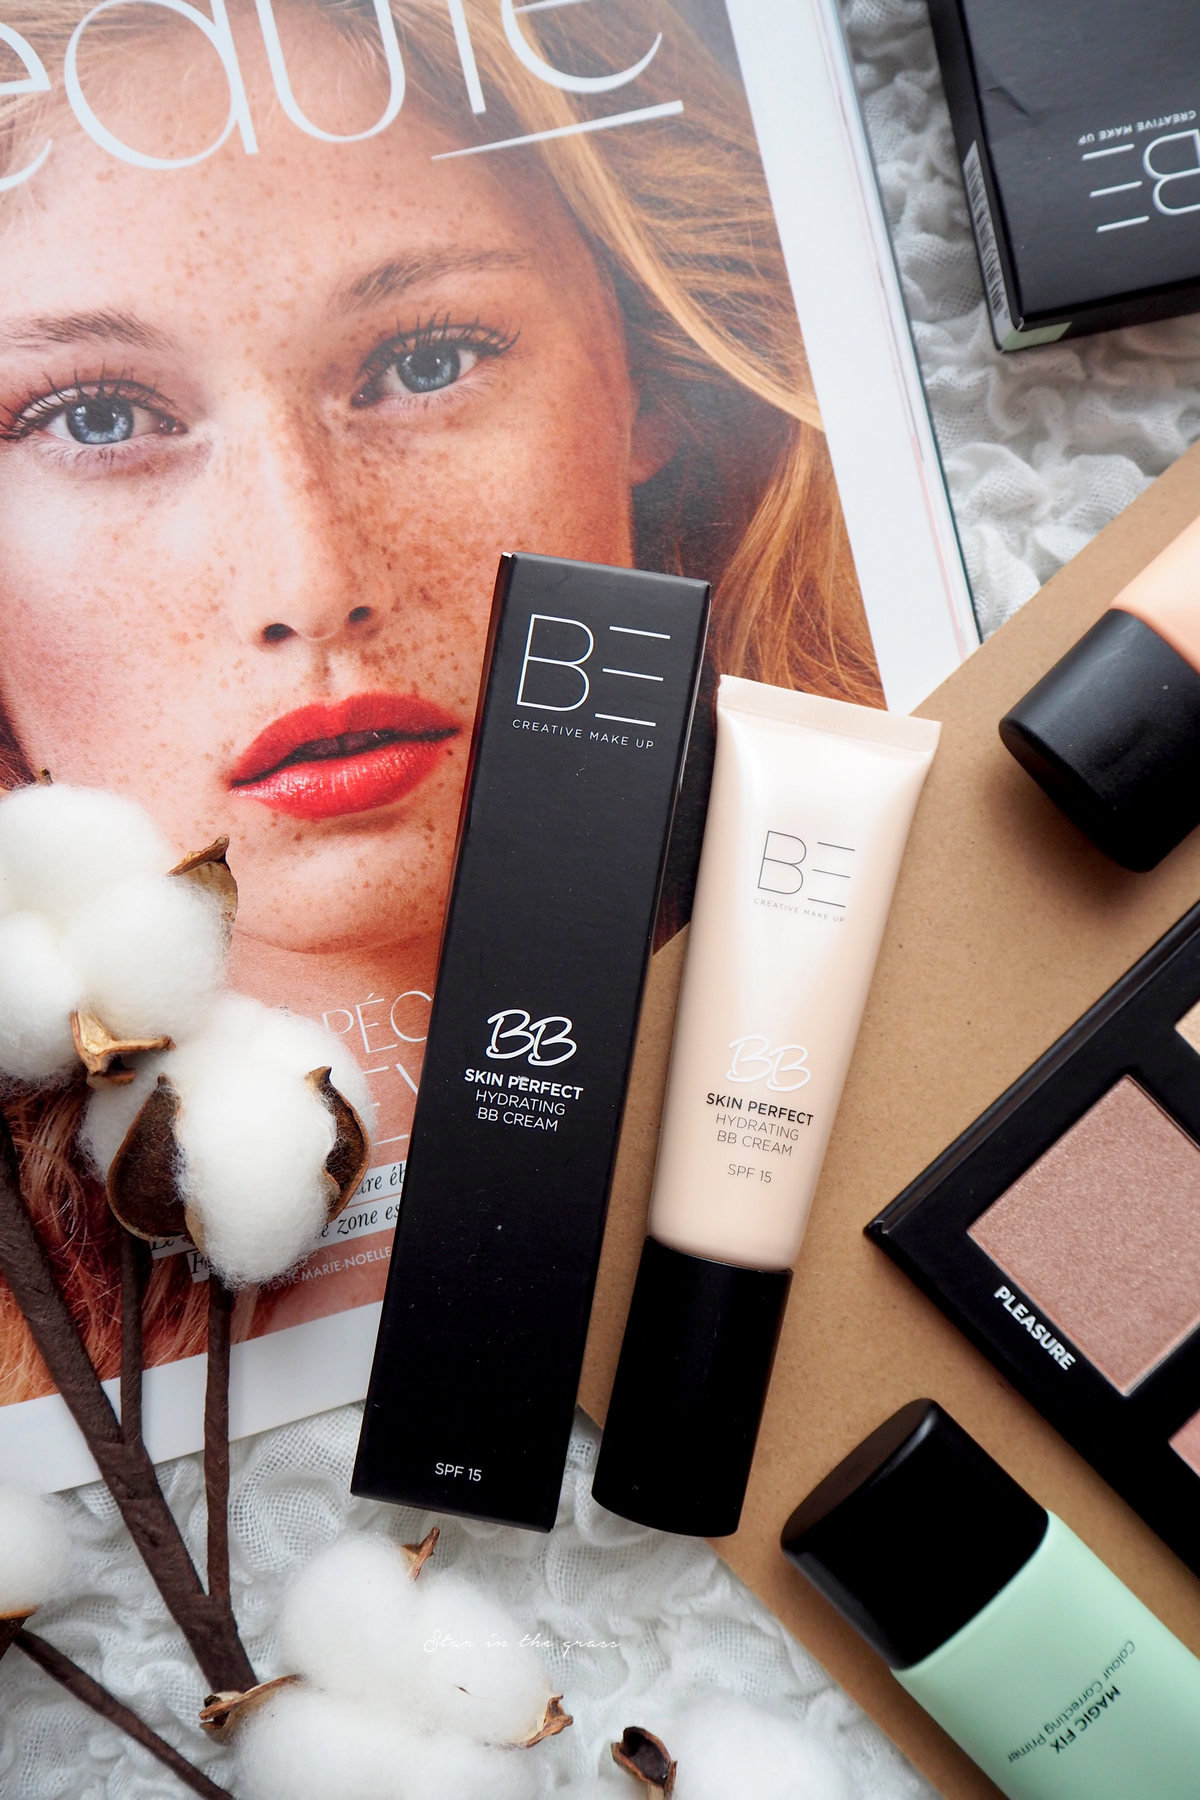 BB Skin Perfect Be Creative Make Up